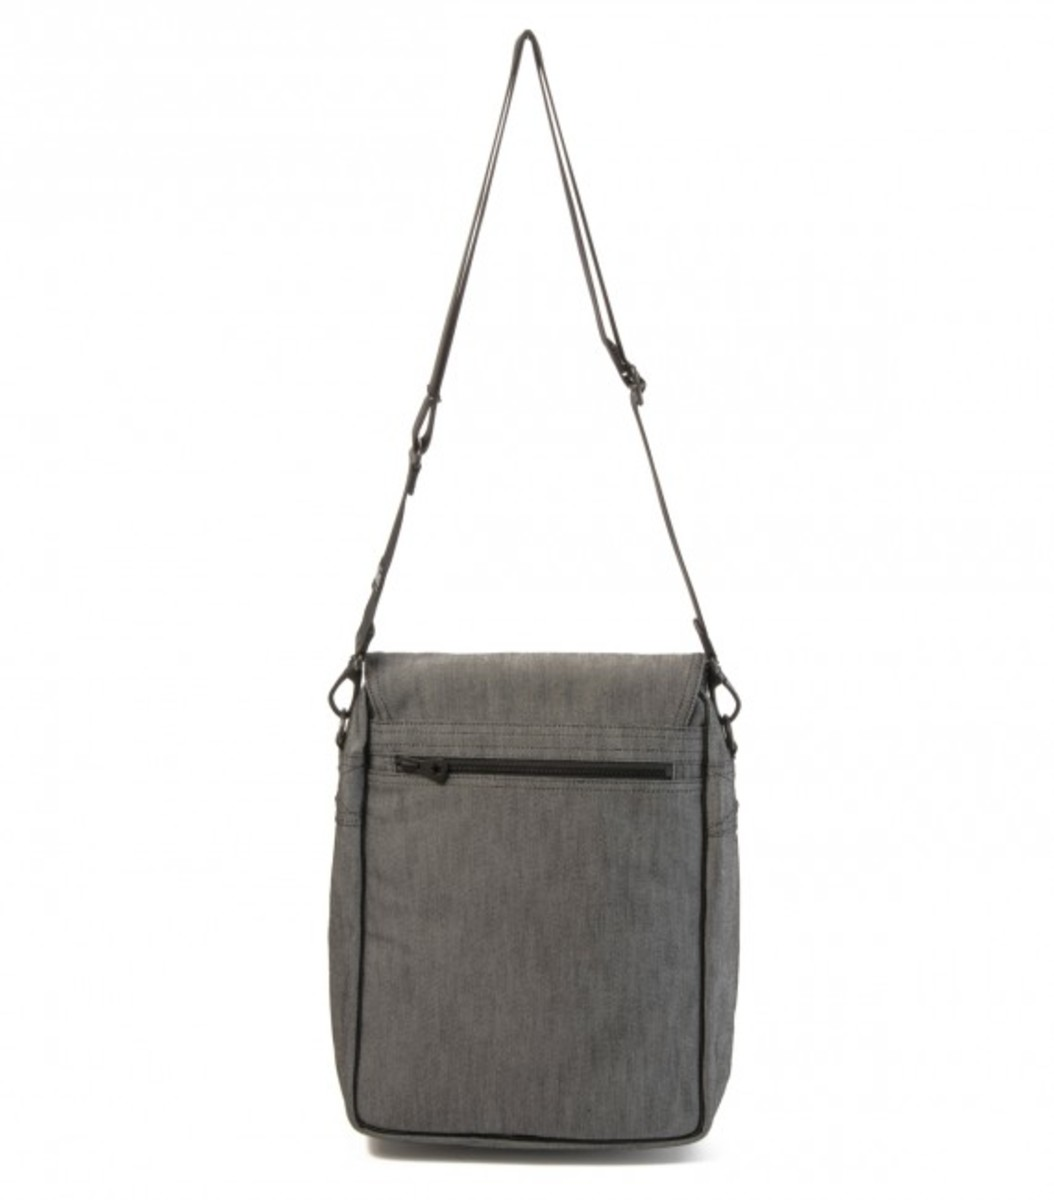 kichizo-shoulder-bag-03